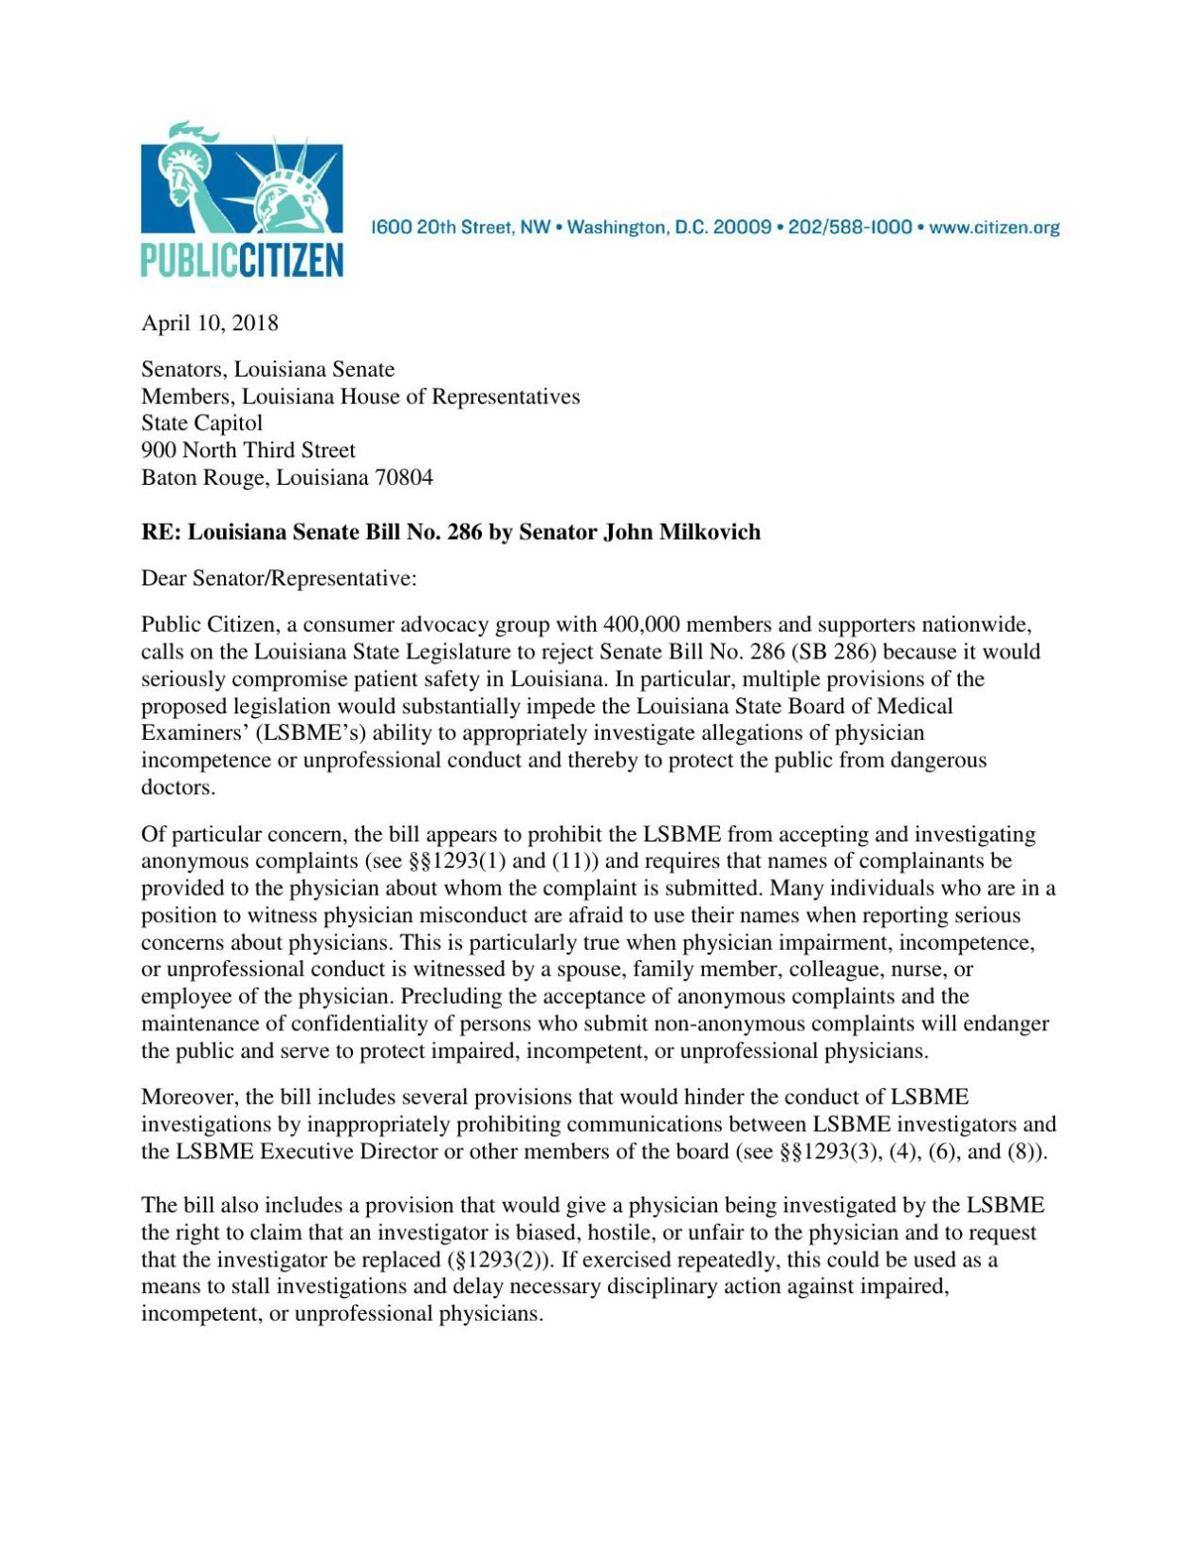 PDF: Letter from Public Citizen opposing proposed Physician's Bill of Rights